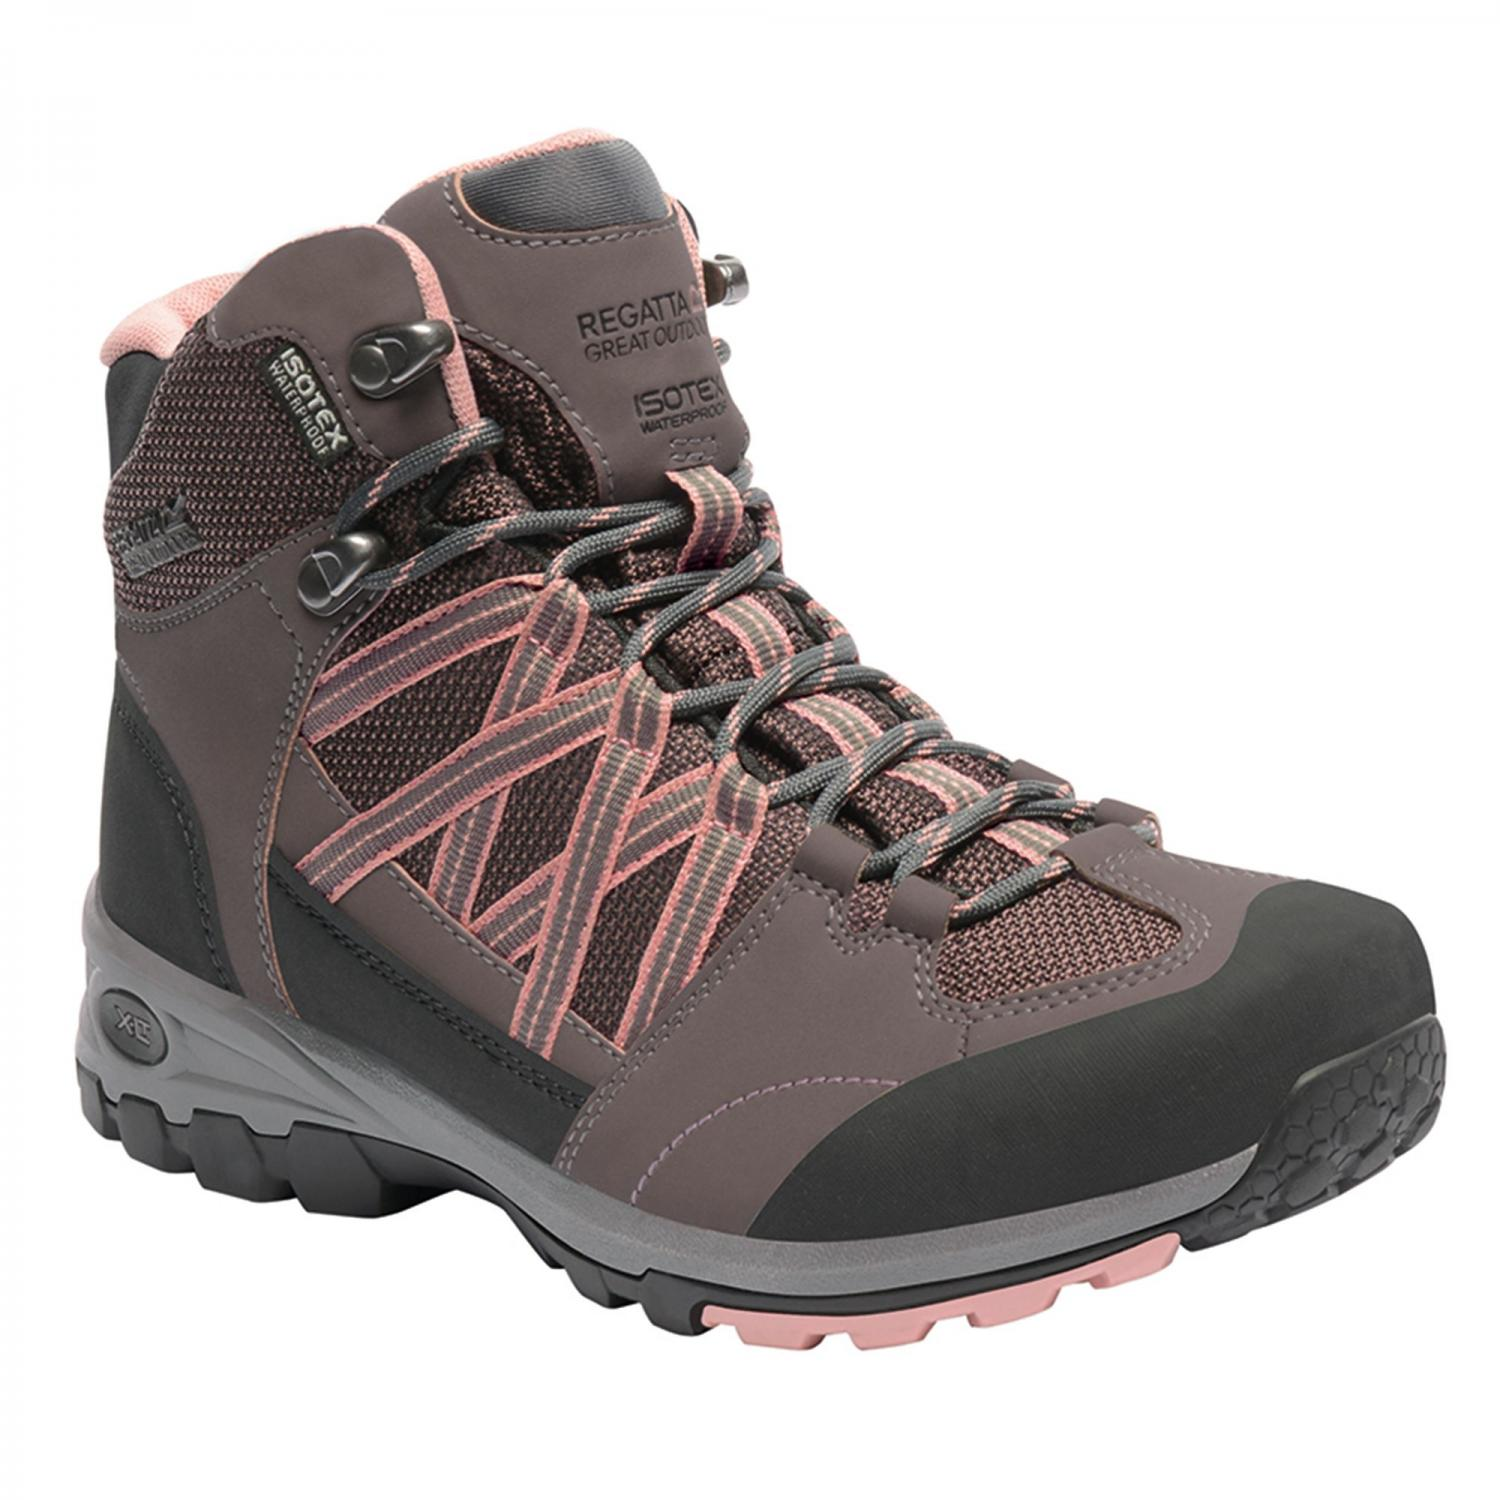 Lady Samaris Mid Hiking Boot Walnut Rose Tan